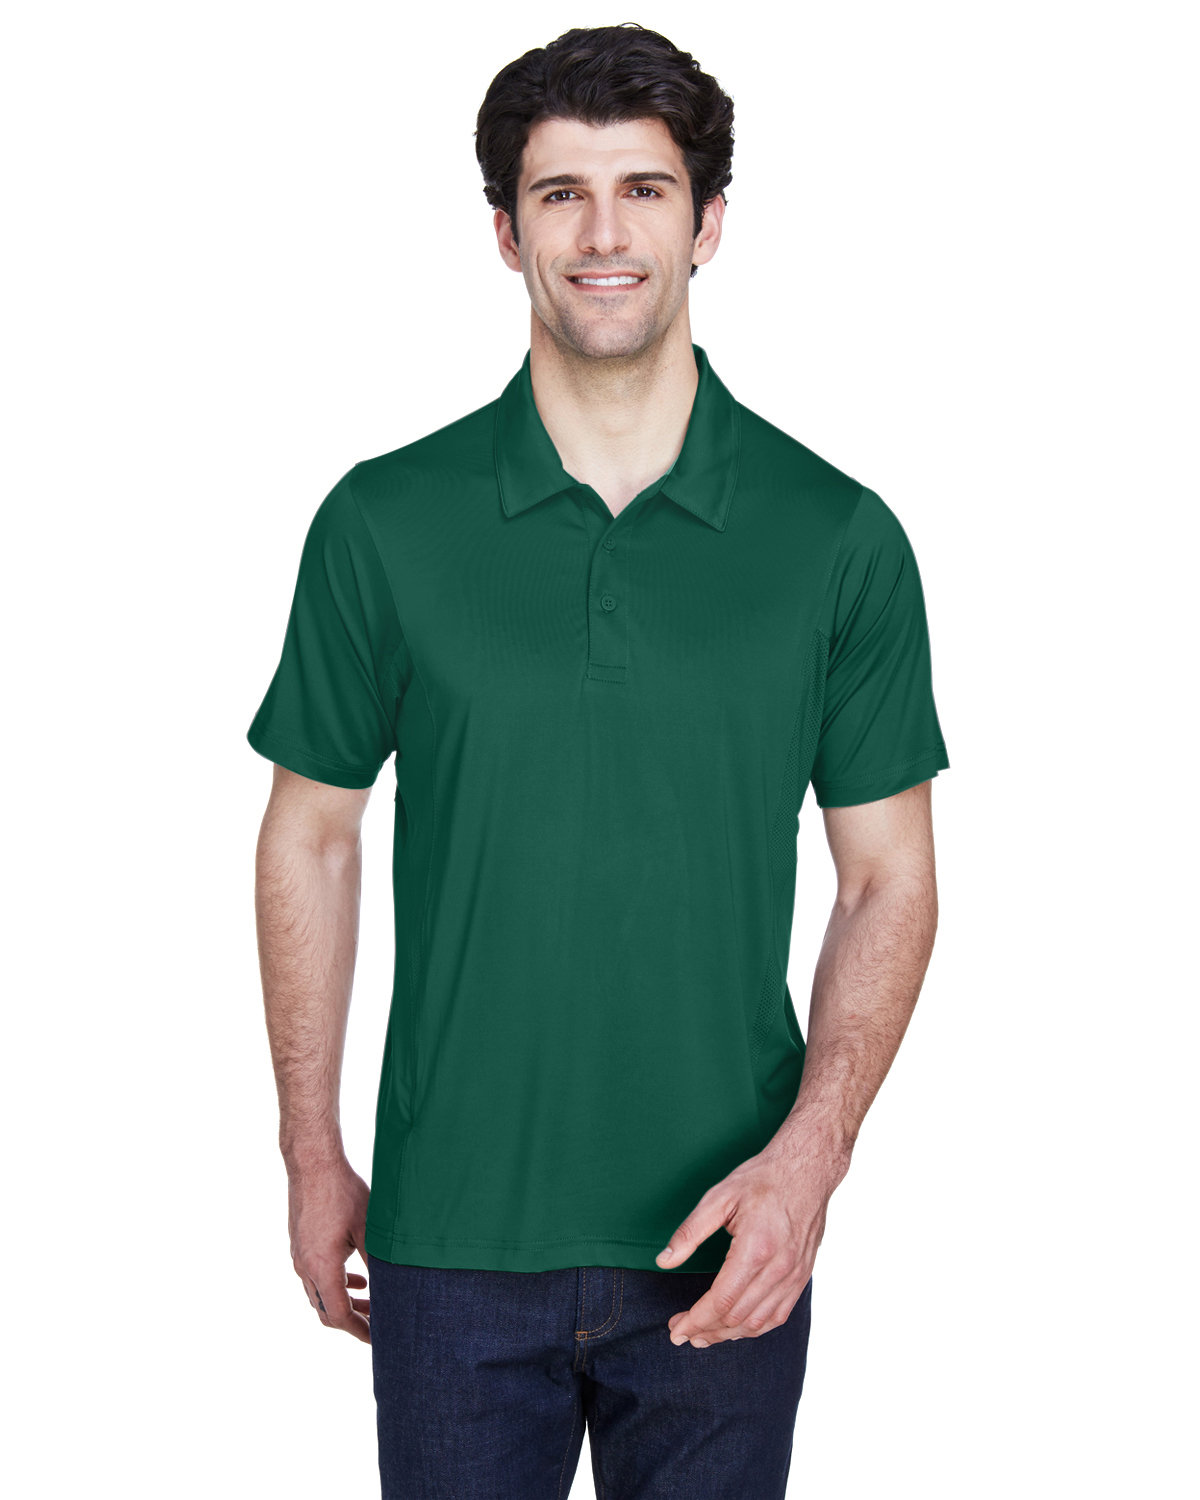 Team 365 Men's Charger Performance Polo SPORT FOREST